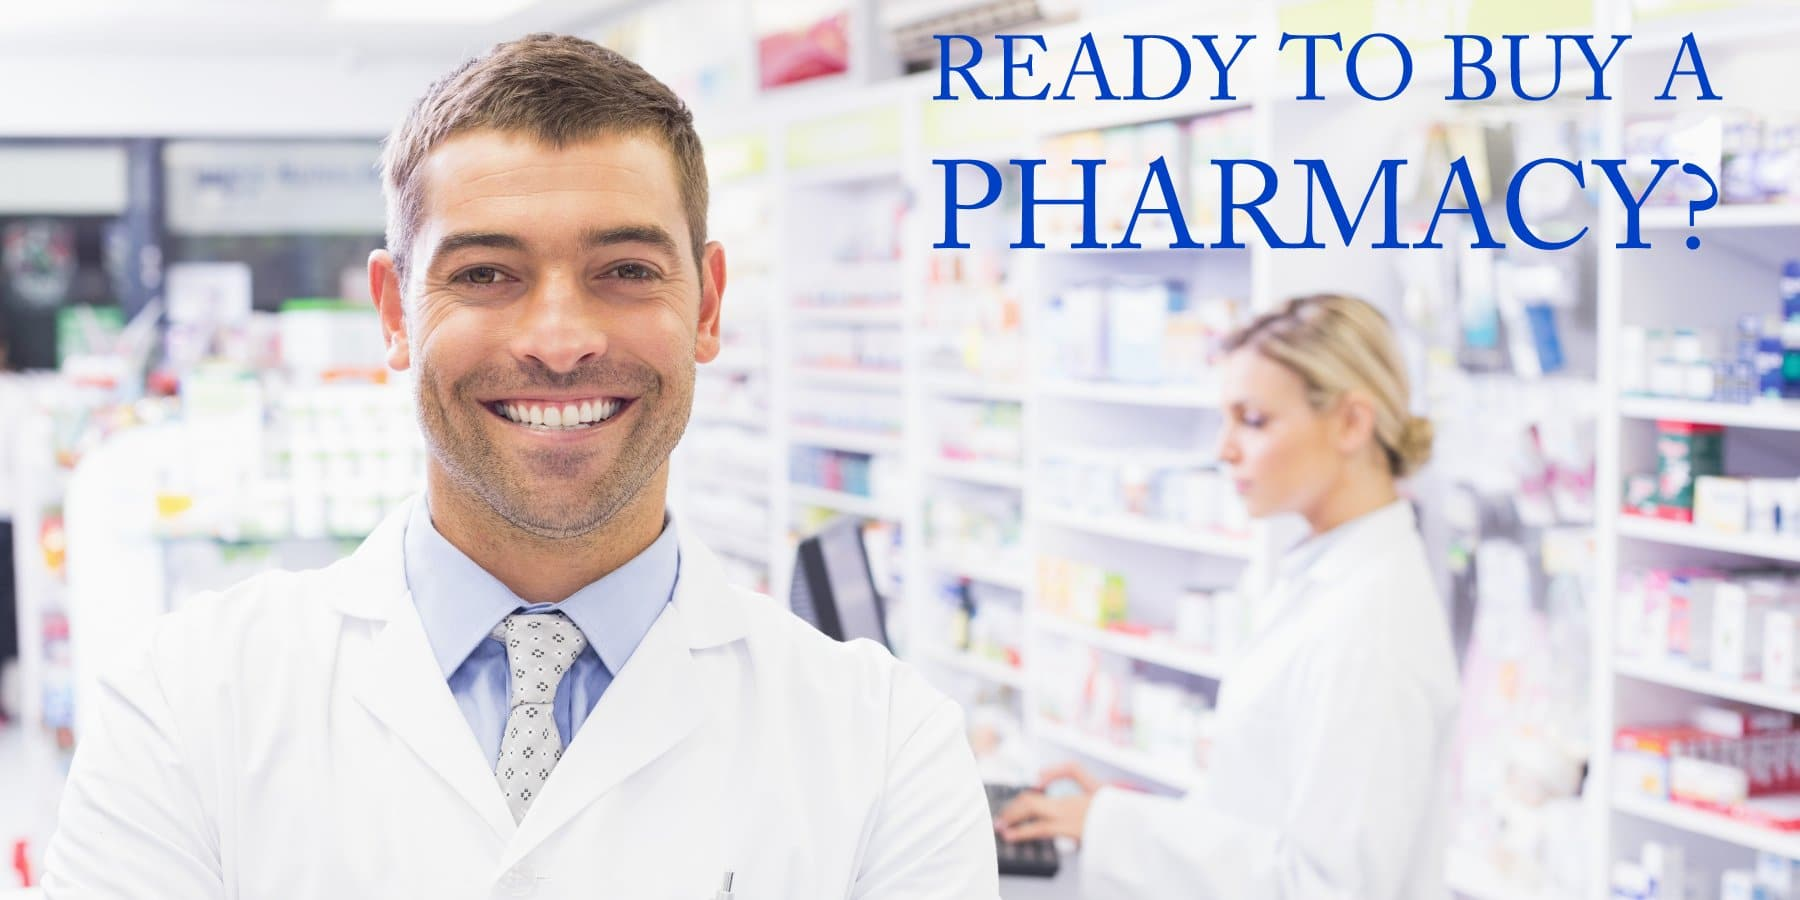 pharmacy ownership, independent pharmacy ownership, pharmacy brokerage services, buy a pharmacy, pharmacy feasibility